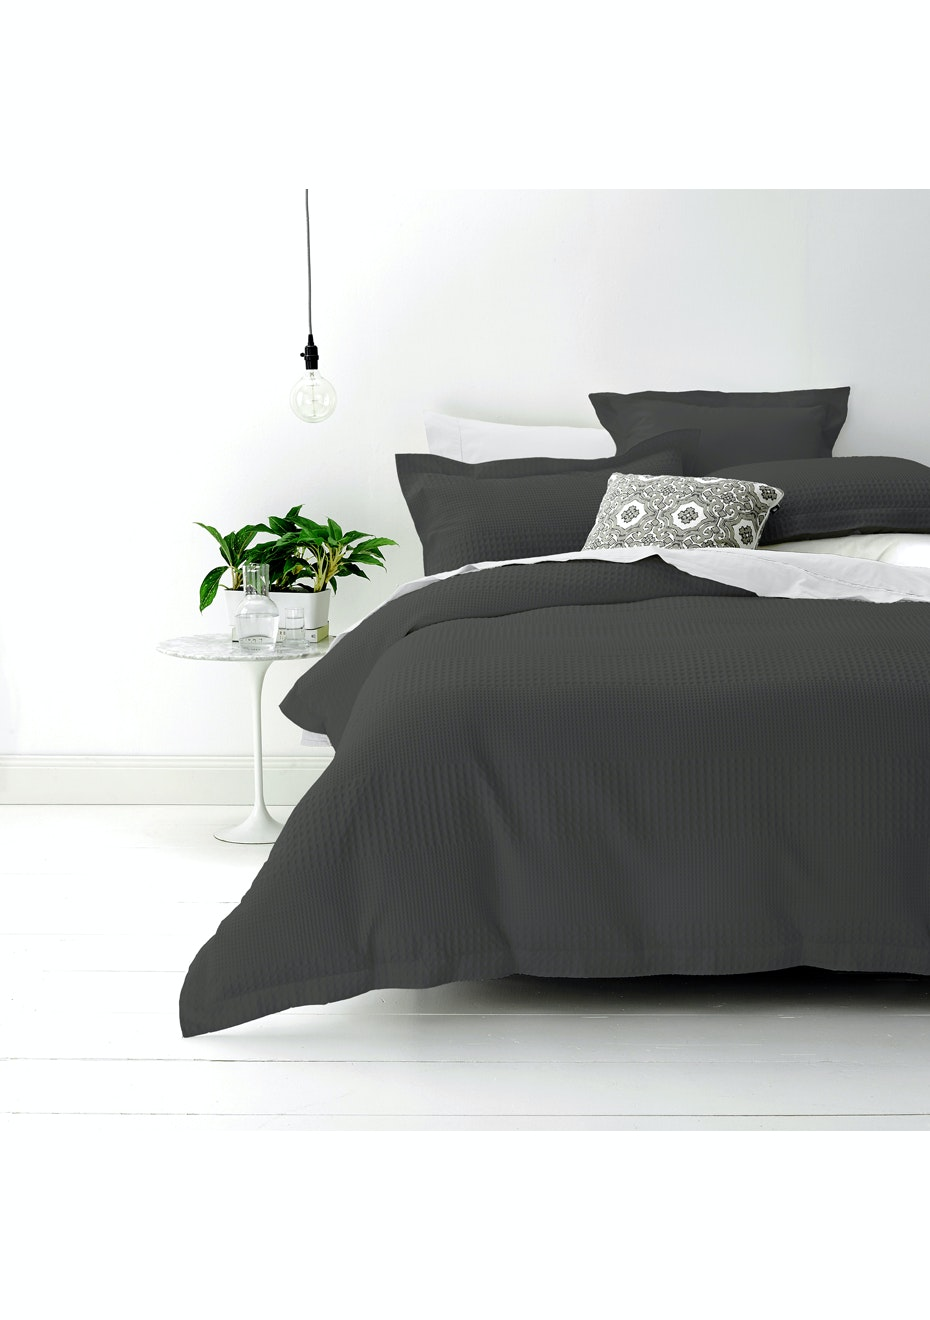 Style & Co 100 % Cotton Jacquard Waffle Quilt Cover set Queen Bed Granite